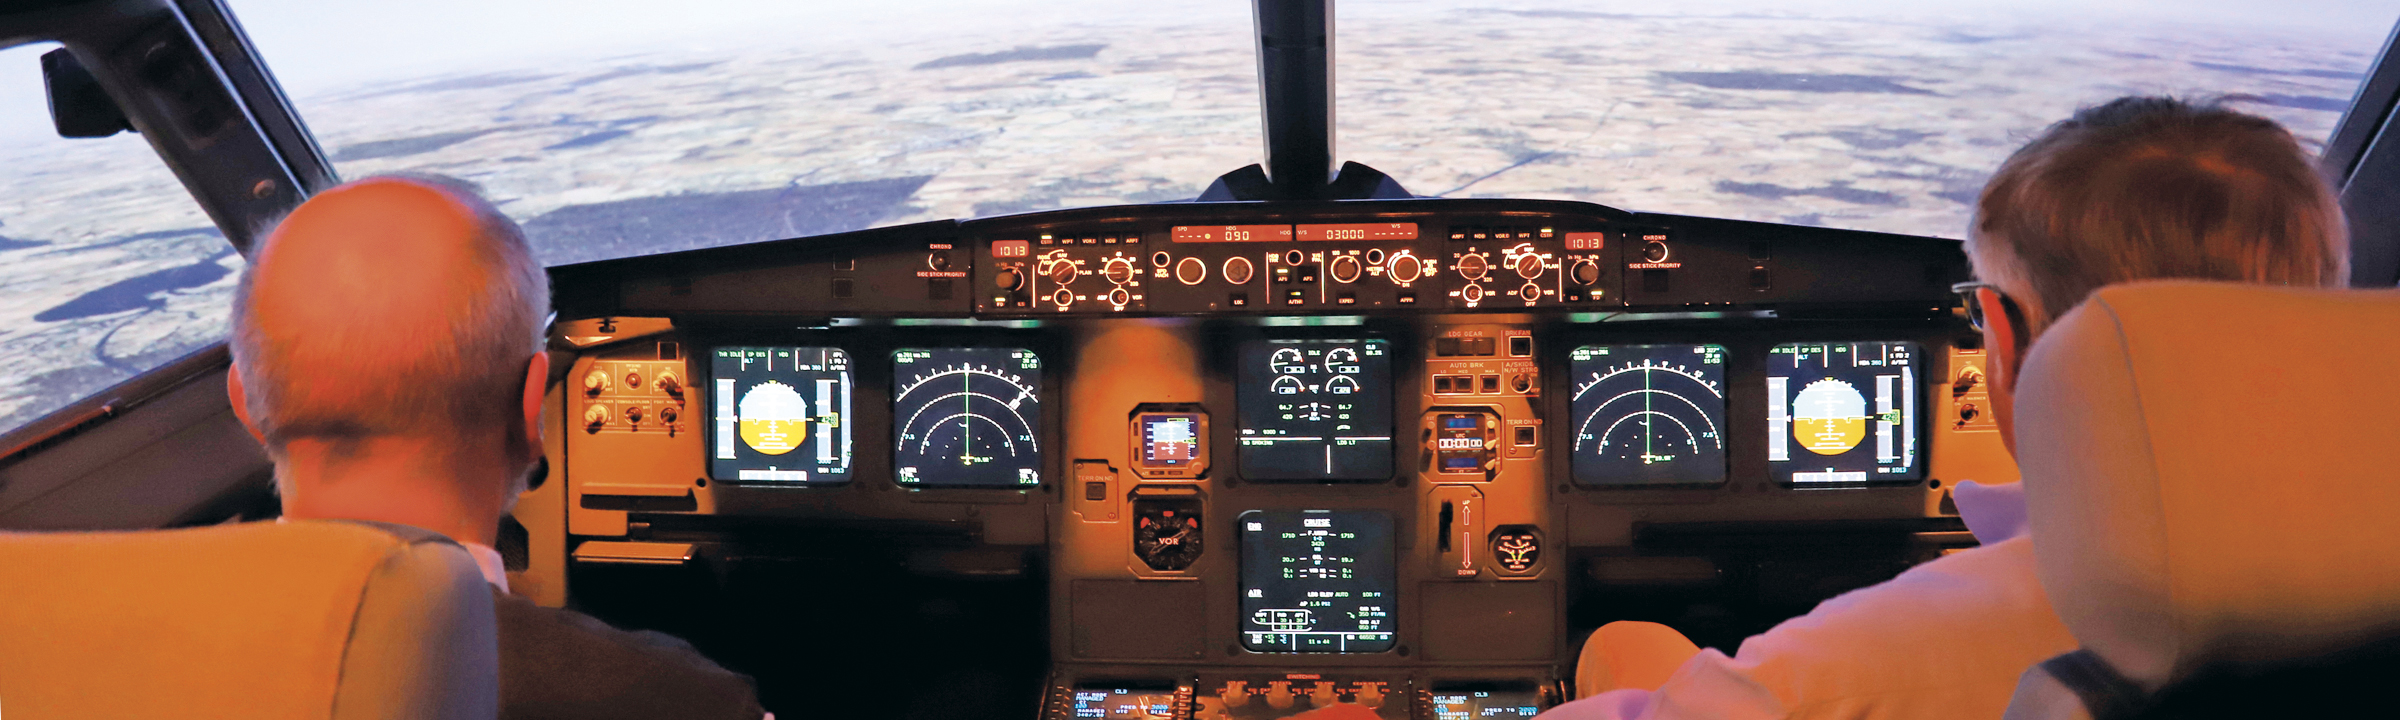 seminare-flugsimulator-coaching